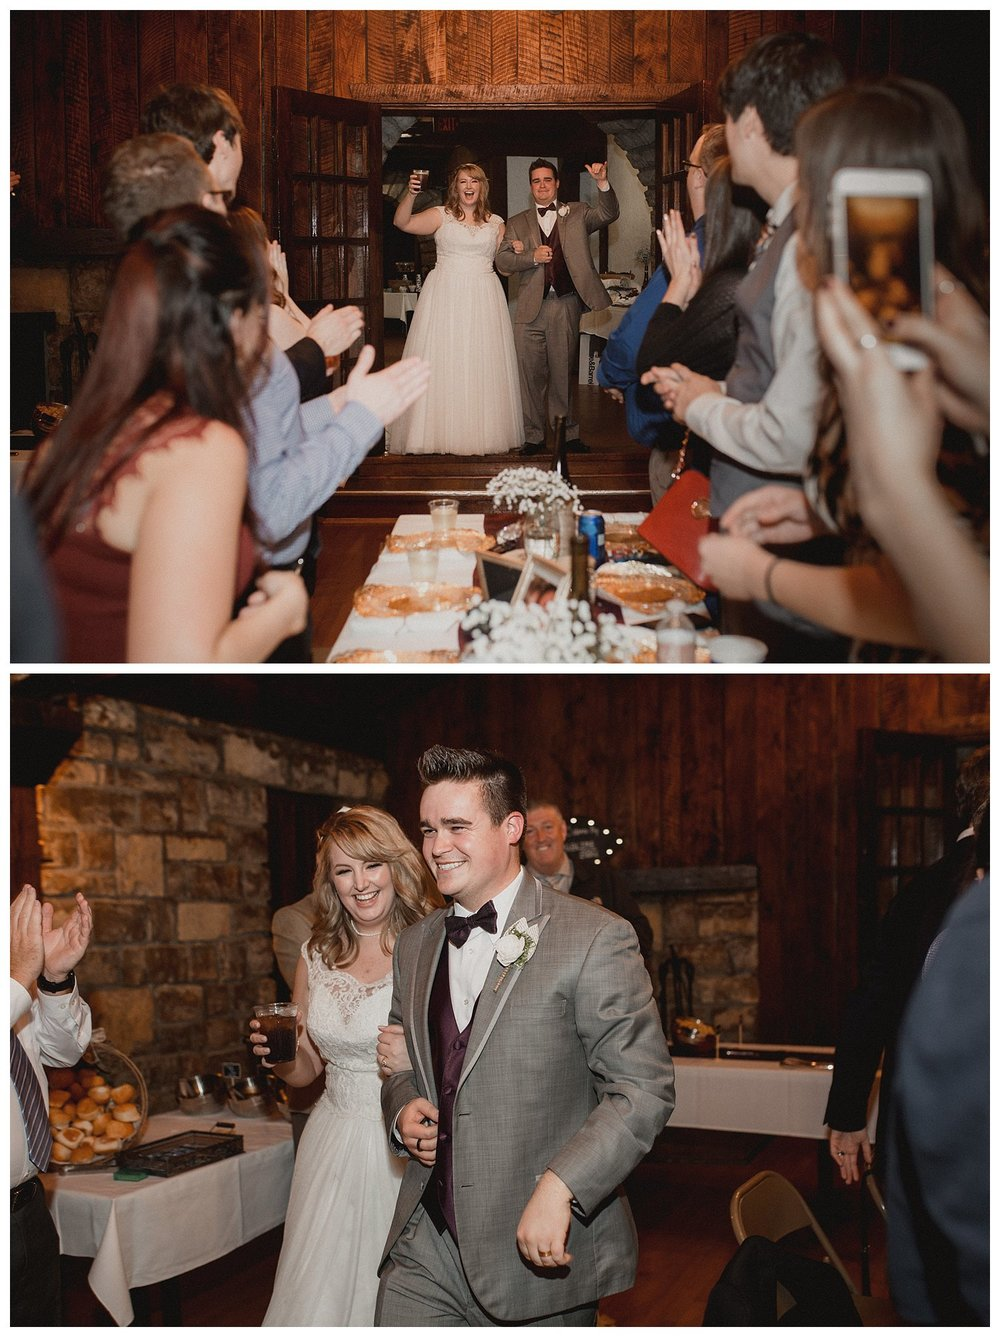 Kelsey_Diane_Photography_Loose_Mansion_Wedding_Photography_Kansas_City_Victor_Lyndsay_0383.jpg